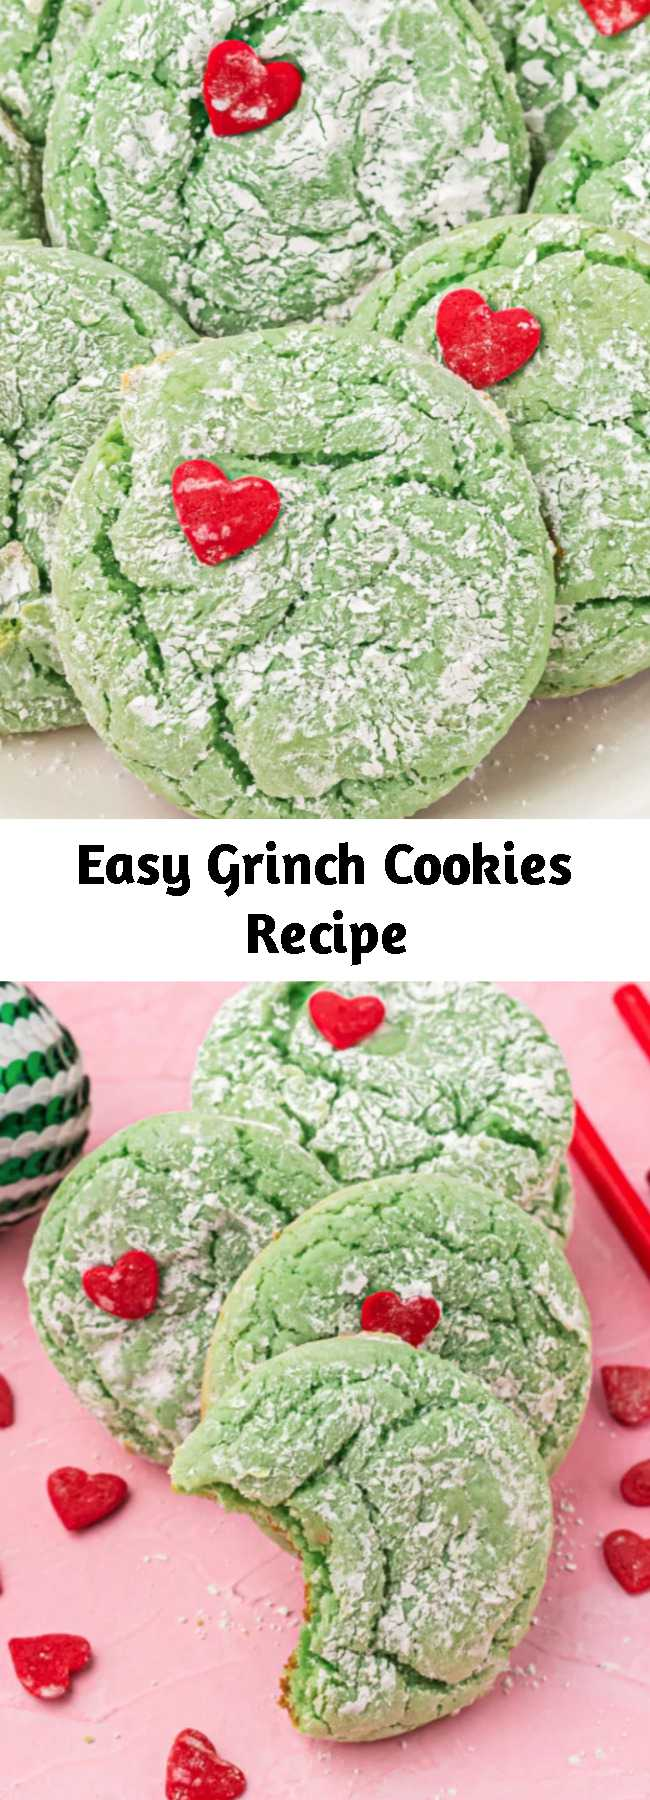 Easy Grinch Cookies Recipe - These Grinch Cookies are the ultimate holiday cookie. They have a soft, gooey texture, are colored to the perfect shade of Grinch-green and topped with powdered sugar and a tiny red heart sprinkle. They are so perfect, you'll never need another Christmas cookie recipe again!